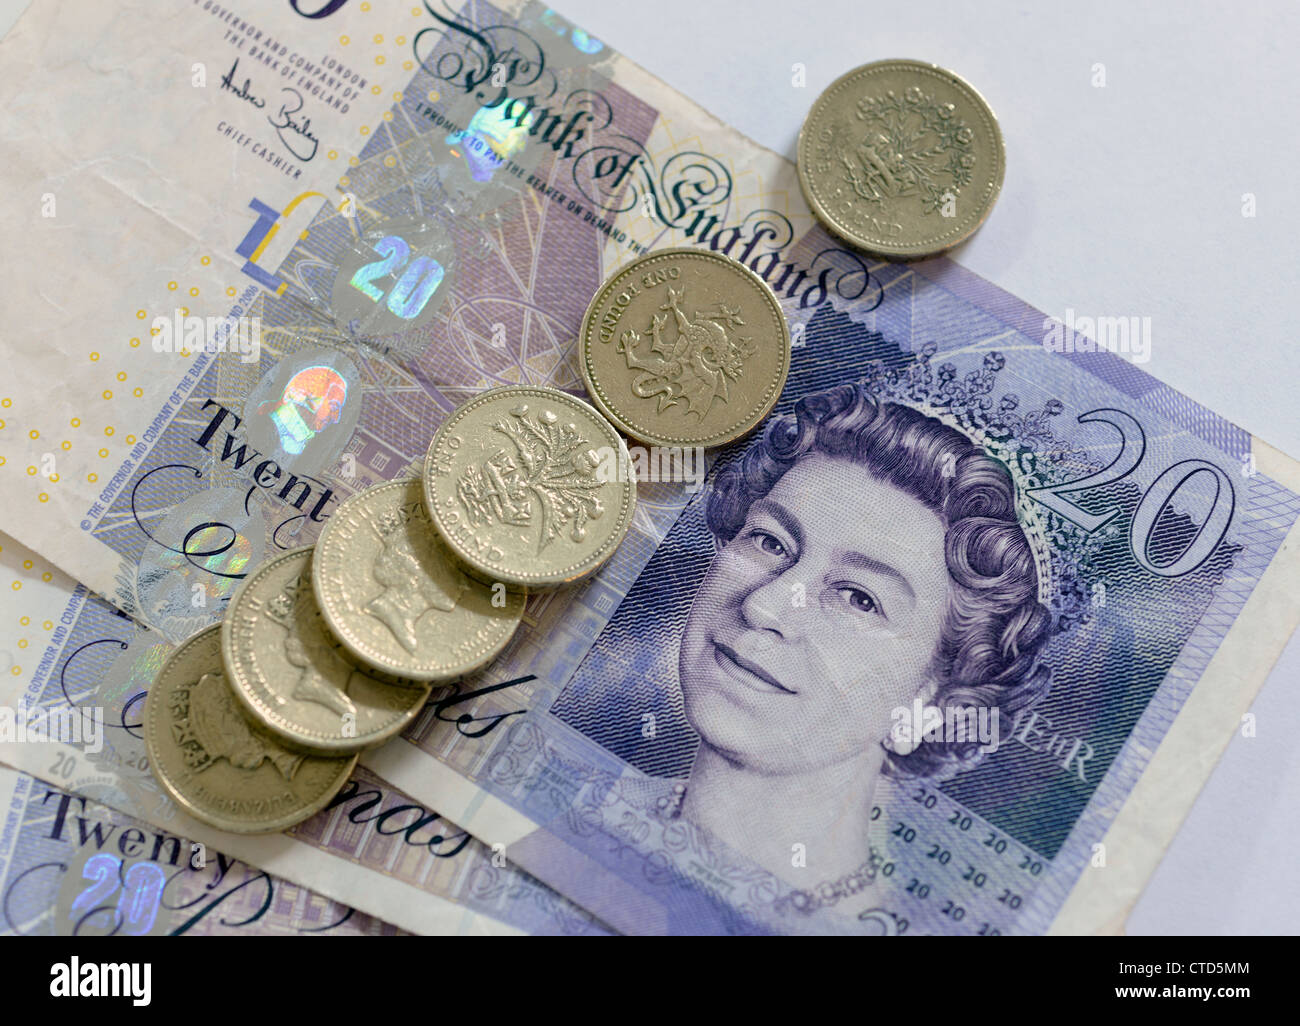 20 pound notes and one pound coins - Stock Image